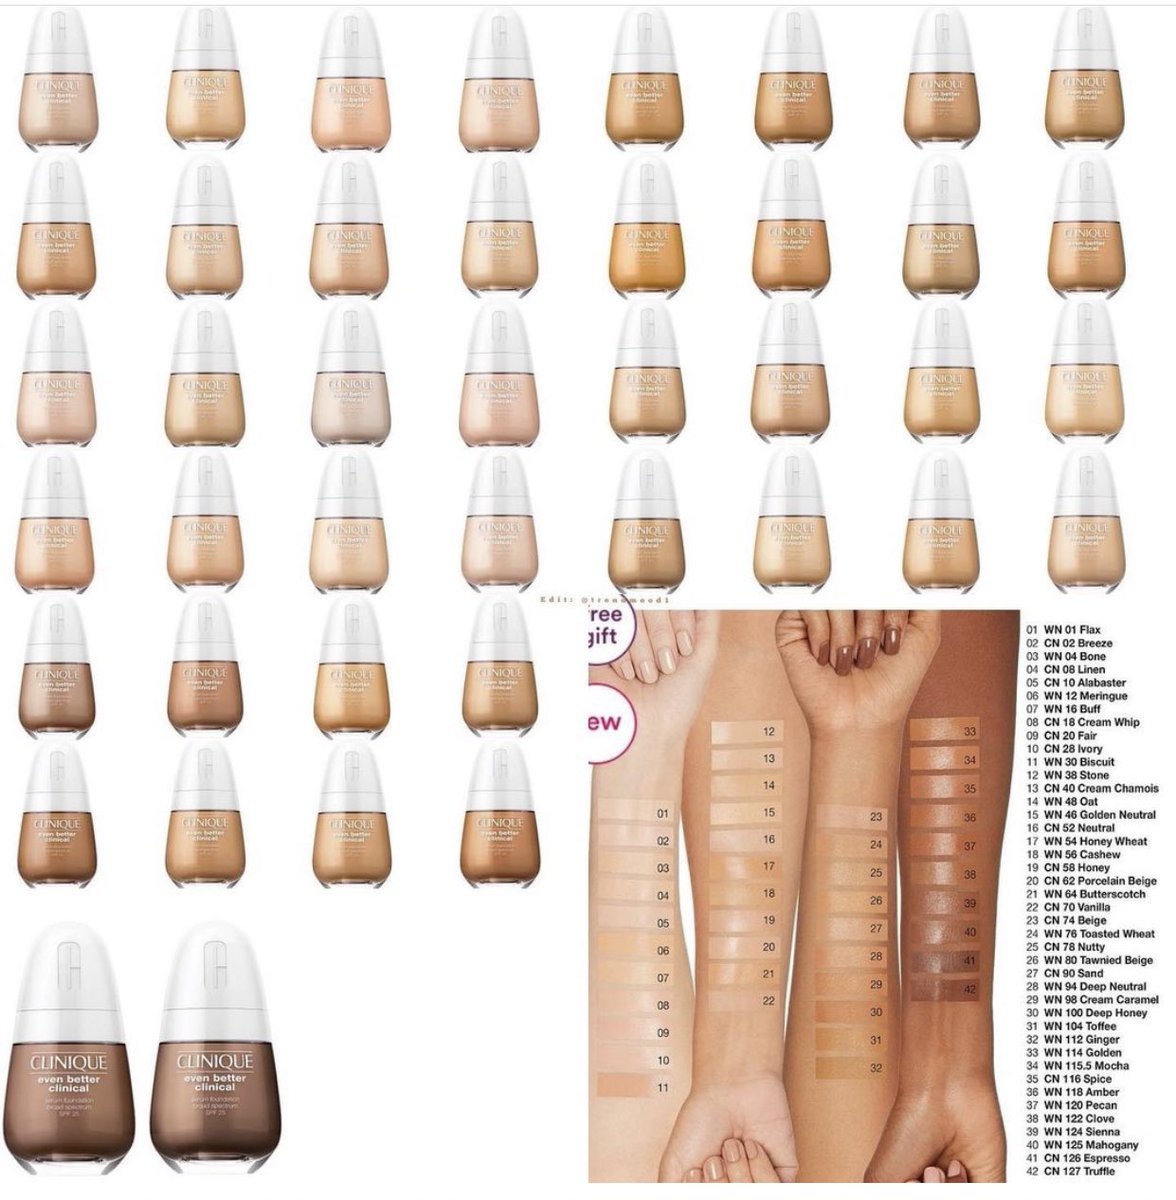 Trendmood On Twitter Available Now Link Https T Co Jvzbbvi6ls Online Ultabeauty New Even Better Clinical Serum Foundation Broad Spectrum Spf 25 By Clinique 42 In 42 Shades I Wish They Had More